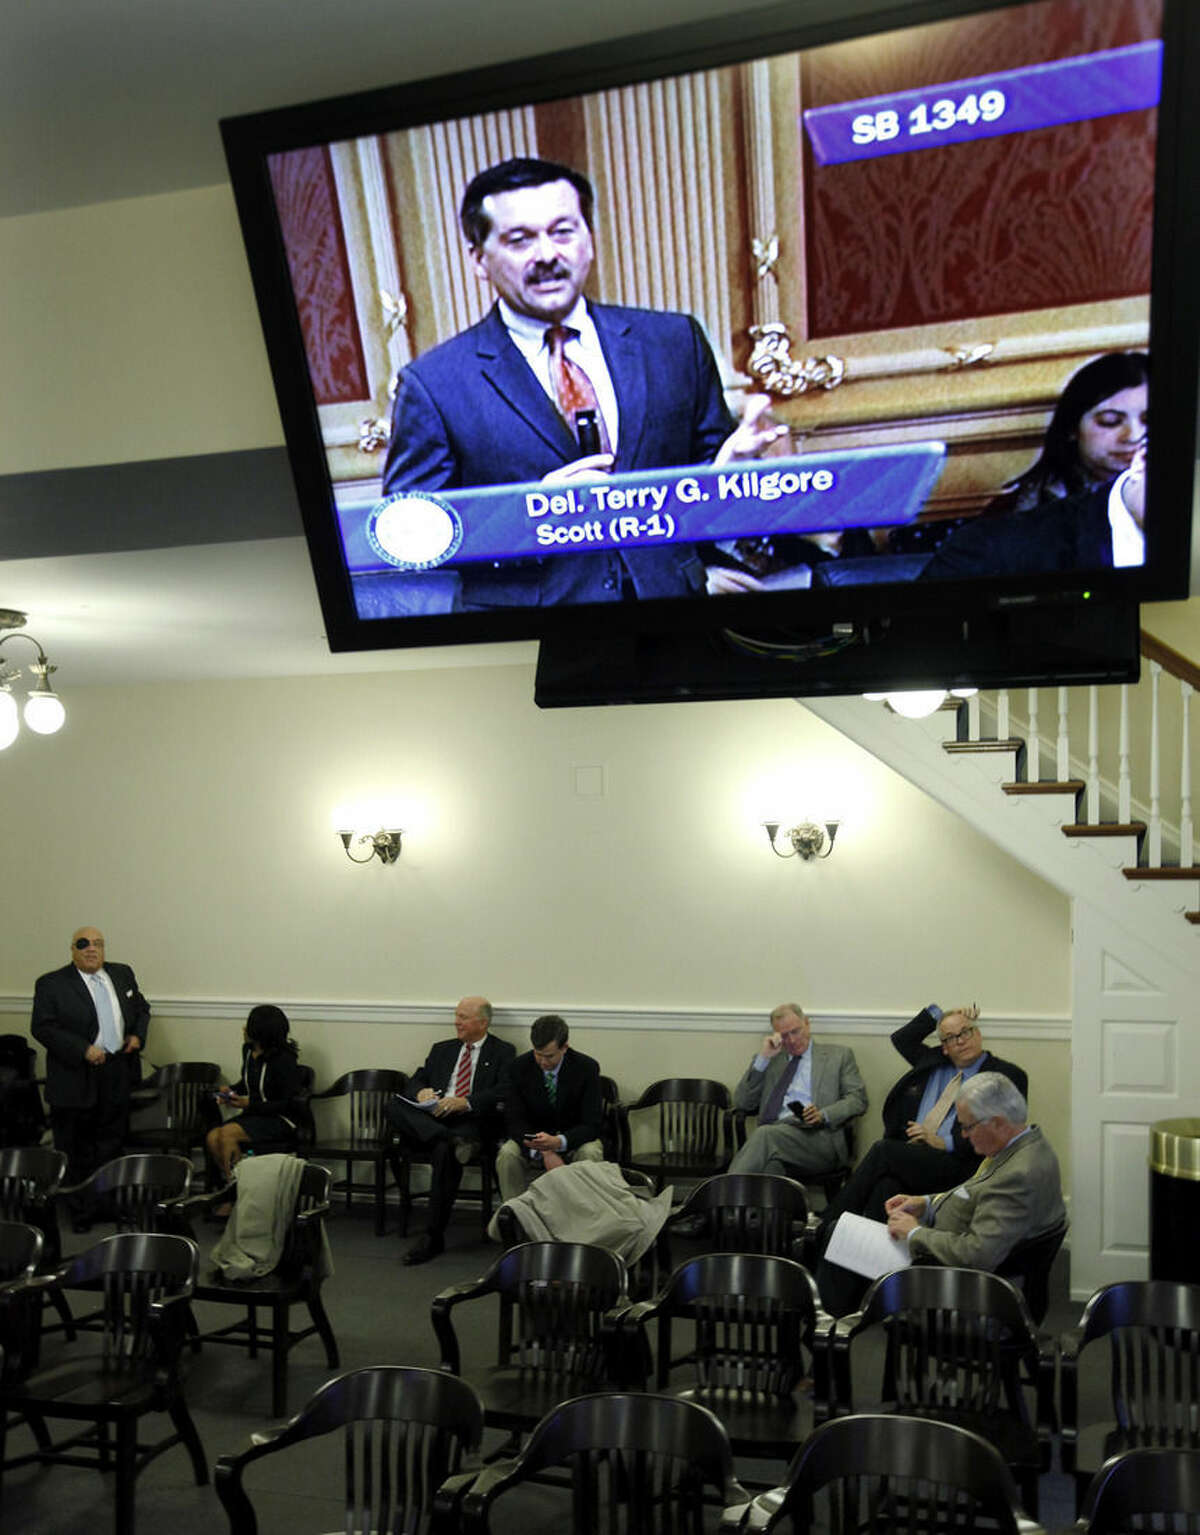 FILE - In this Feb. 12, 2015, file photo, lobbyists for Dominion Resources watch from a committee room as Del. Terry G. Kilgore, R-Scott, (on closed-circuit tv) presents SB1349, a bill from Sen. Frank W. Wagner, R-VA Beach, changing the regulatory structure of electric utility companies, to the members of the Virginia House of Delegates at the State Capitol in Richmond, Va. Company records obtained by the AP show residents were billed tens of thousands to pay for donations Dominion Resources made to politically connected charities. (AP Photo/Richmond Times-Dispatch, Bob Brown, File)